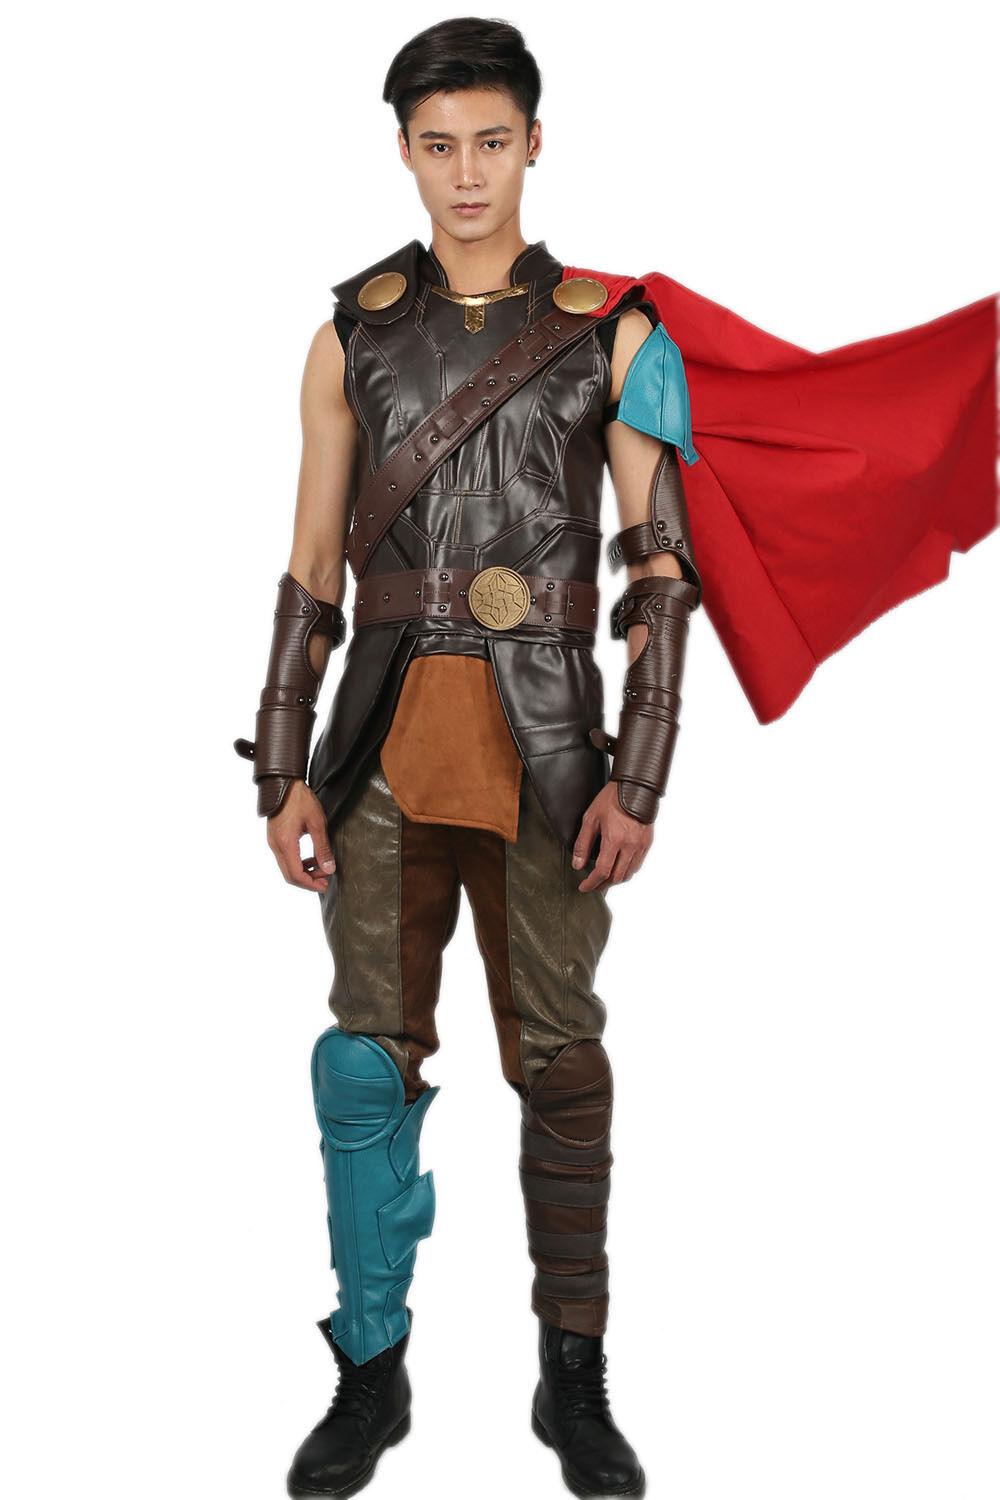 Thor: Ragnarok Thor Costume Popular Festival Cosplay Costume for Adults